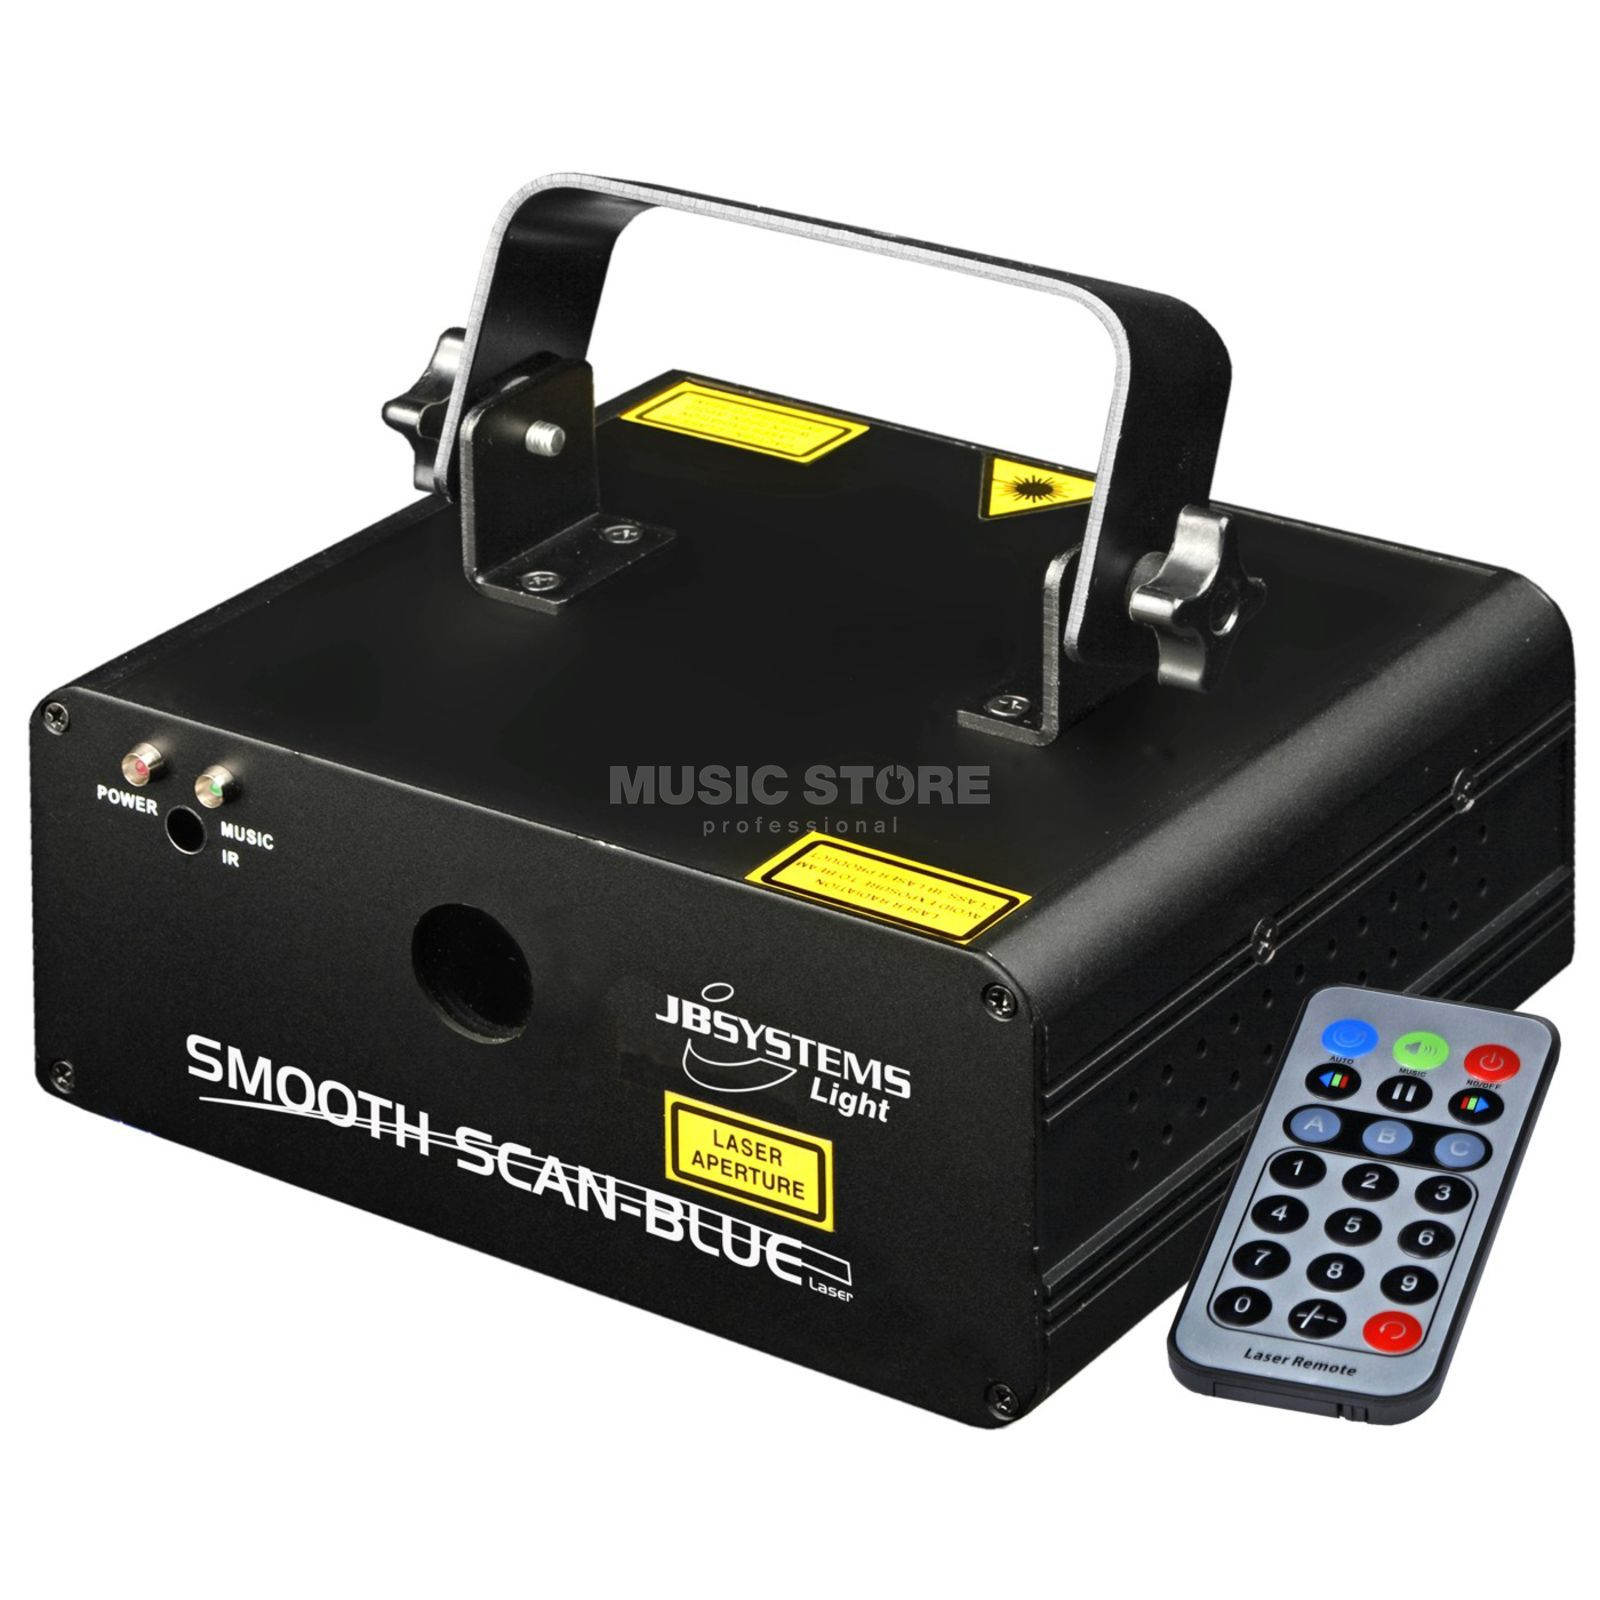 JB Systems Smooth Scan Blue Laser  Produktbild